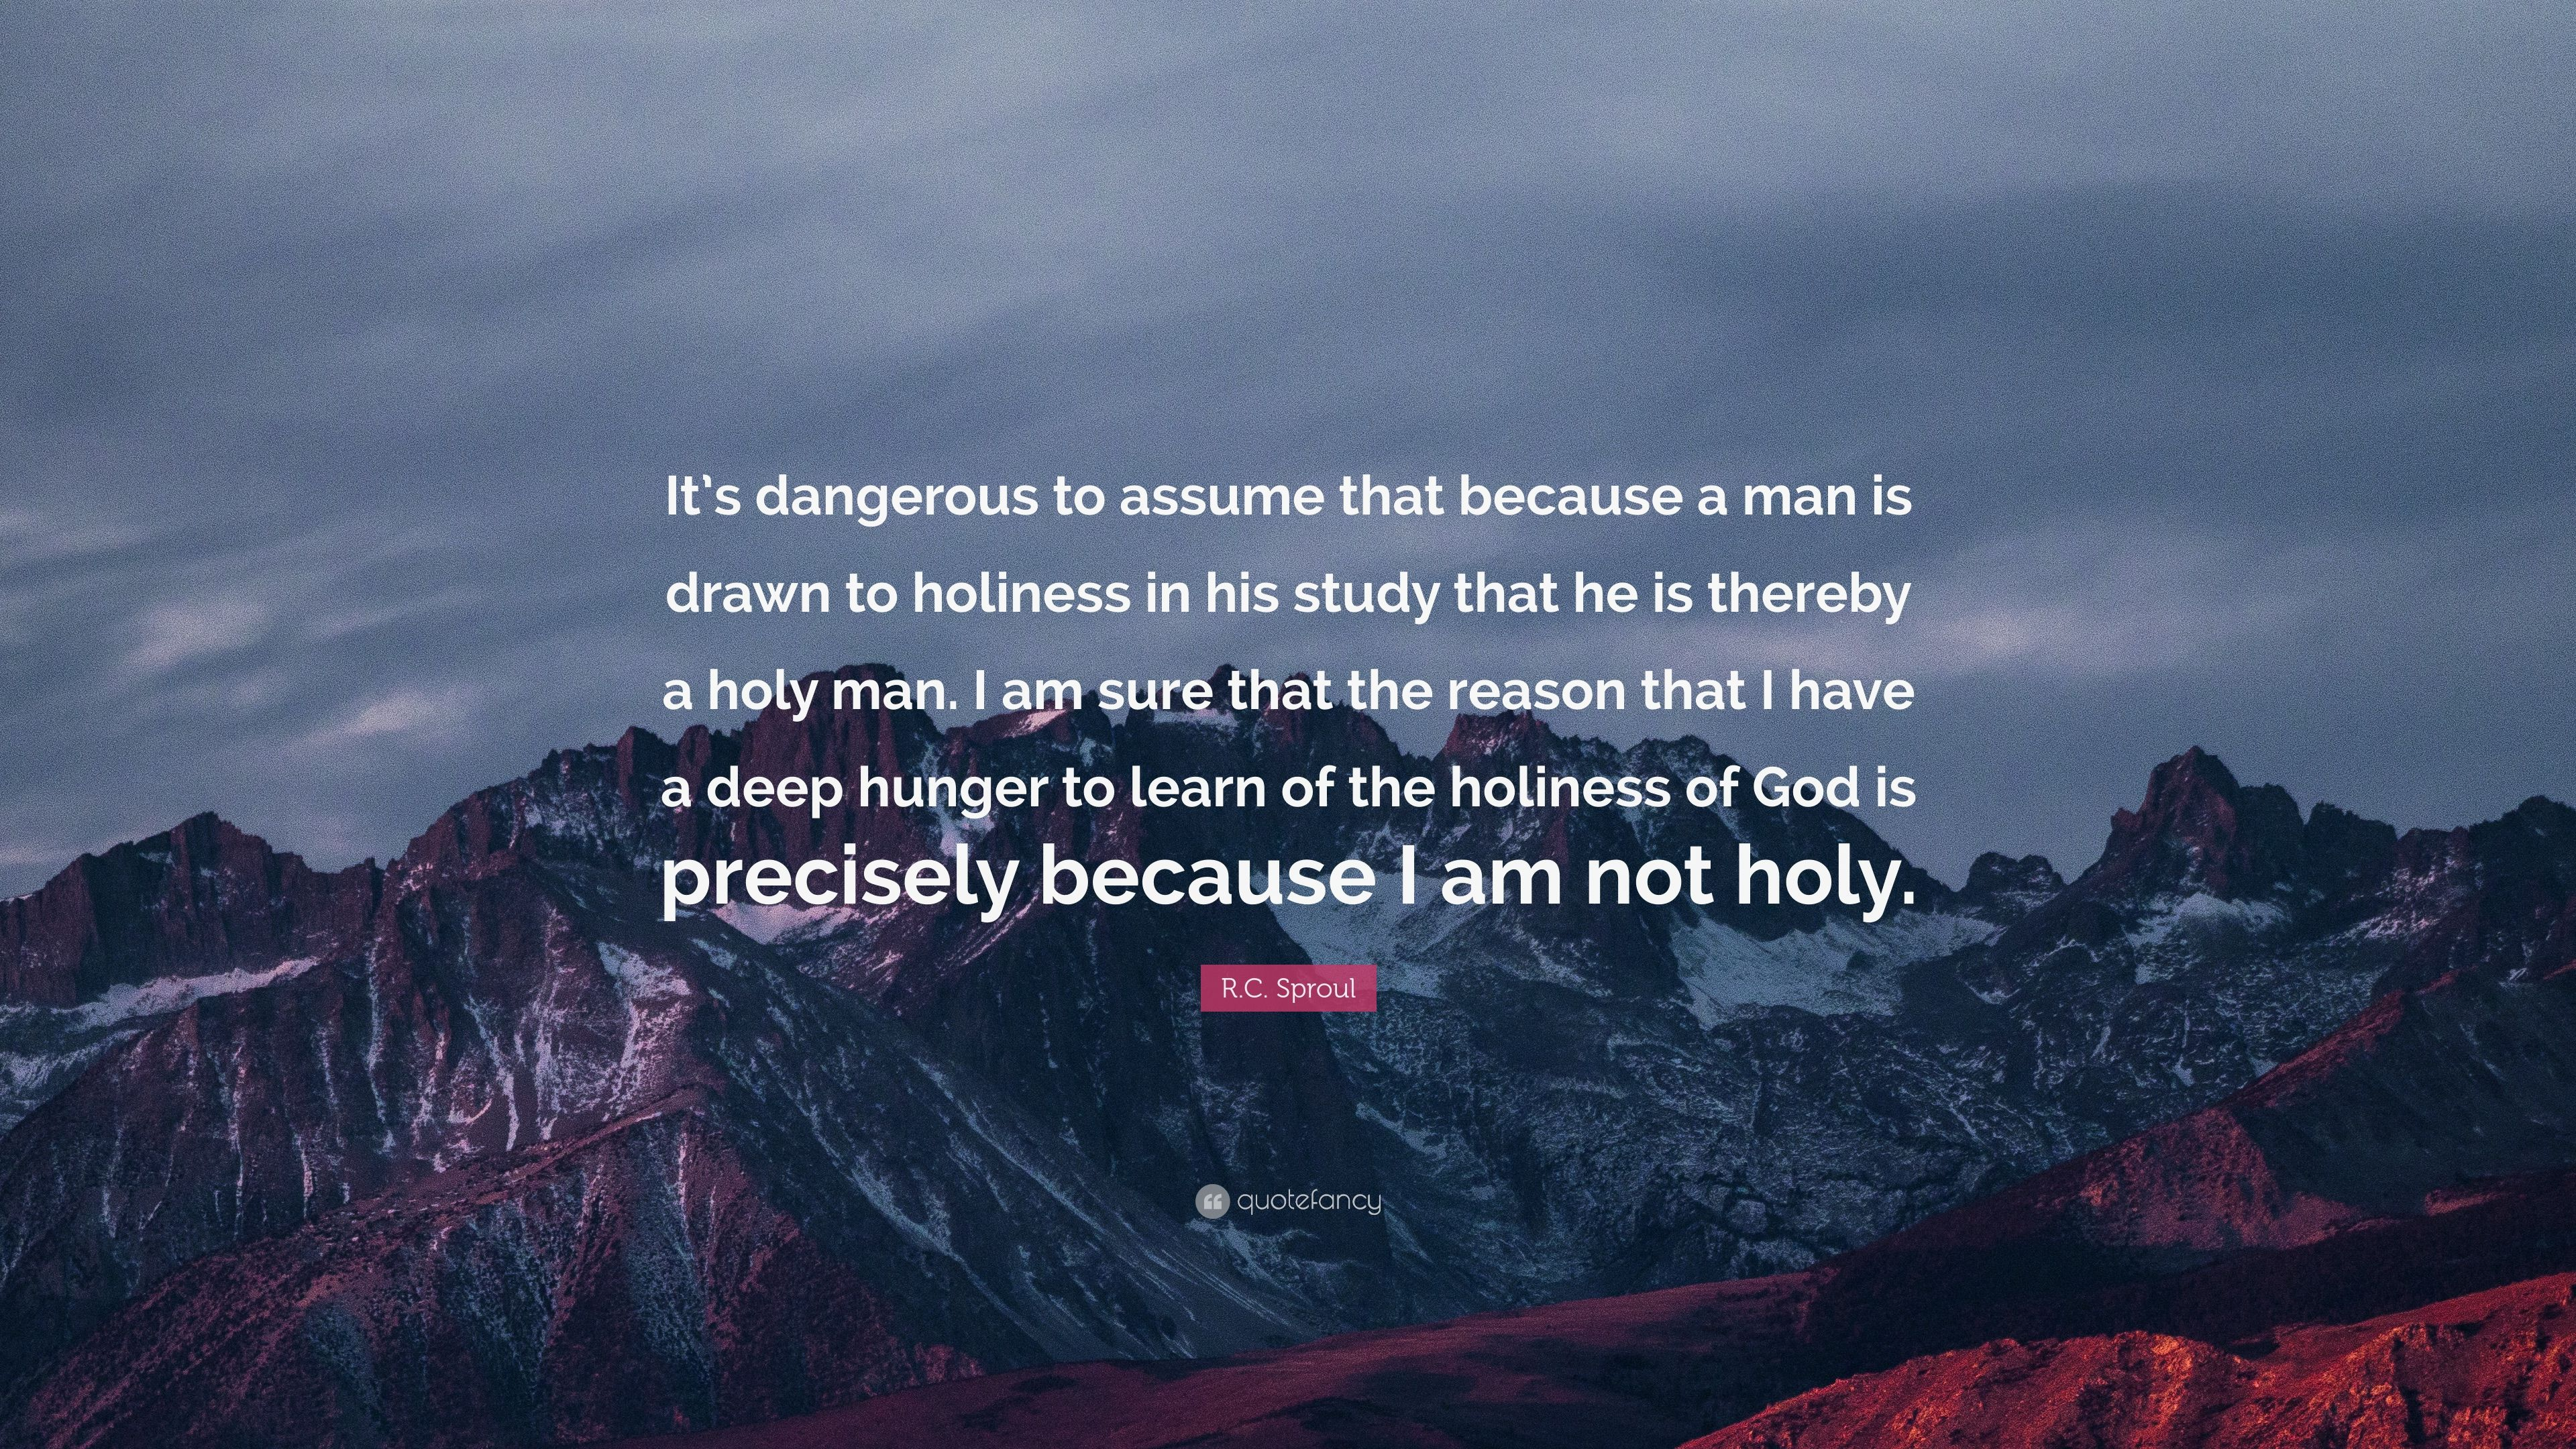 R C Sproul Quote It S Dangerous To Assume That Because A Man Is Drawn To Holiness In His Study That He Is Thereby A Holy Man I Am Sure T 7 Wallpapers Quotefancy